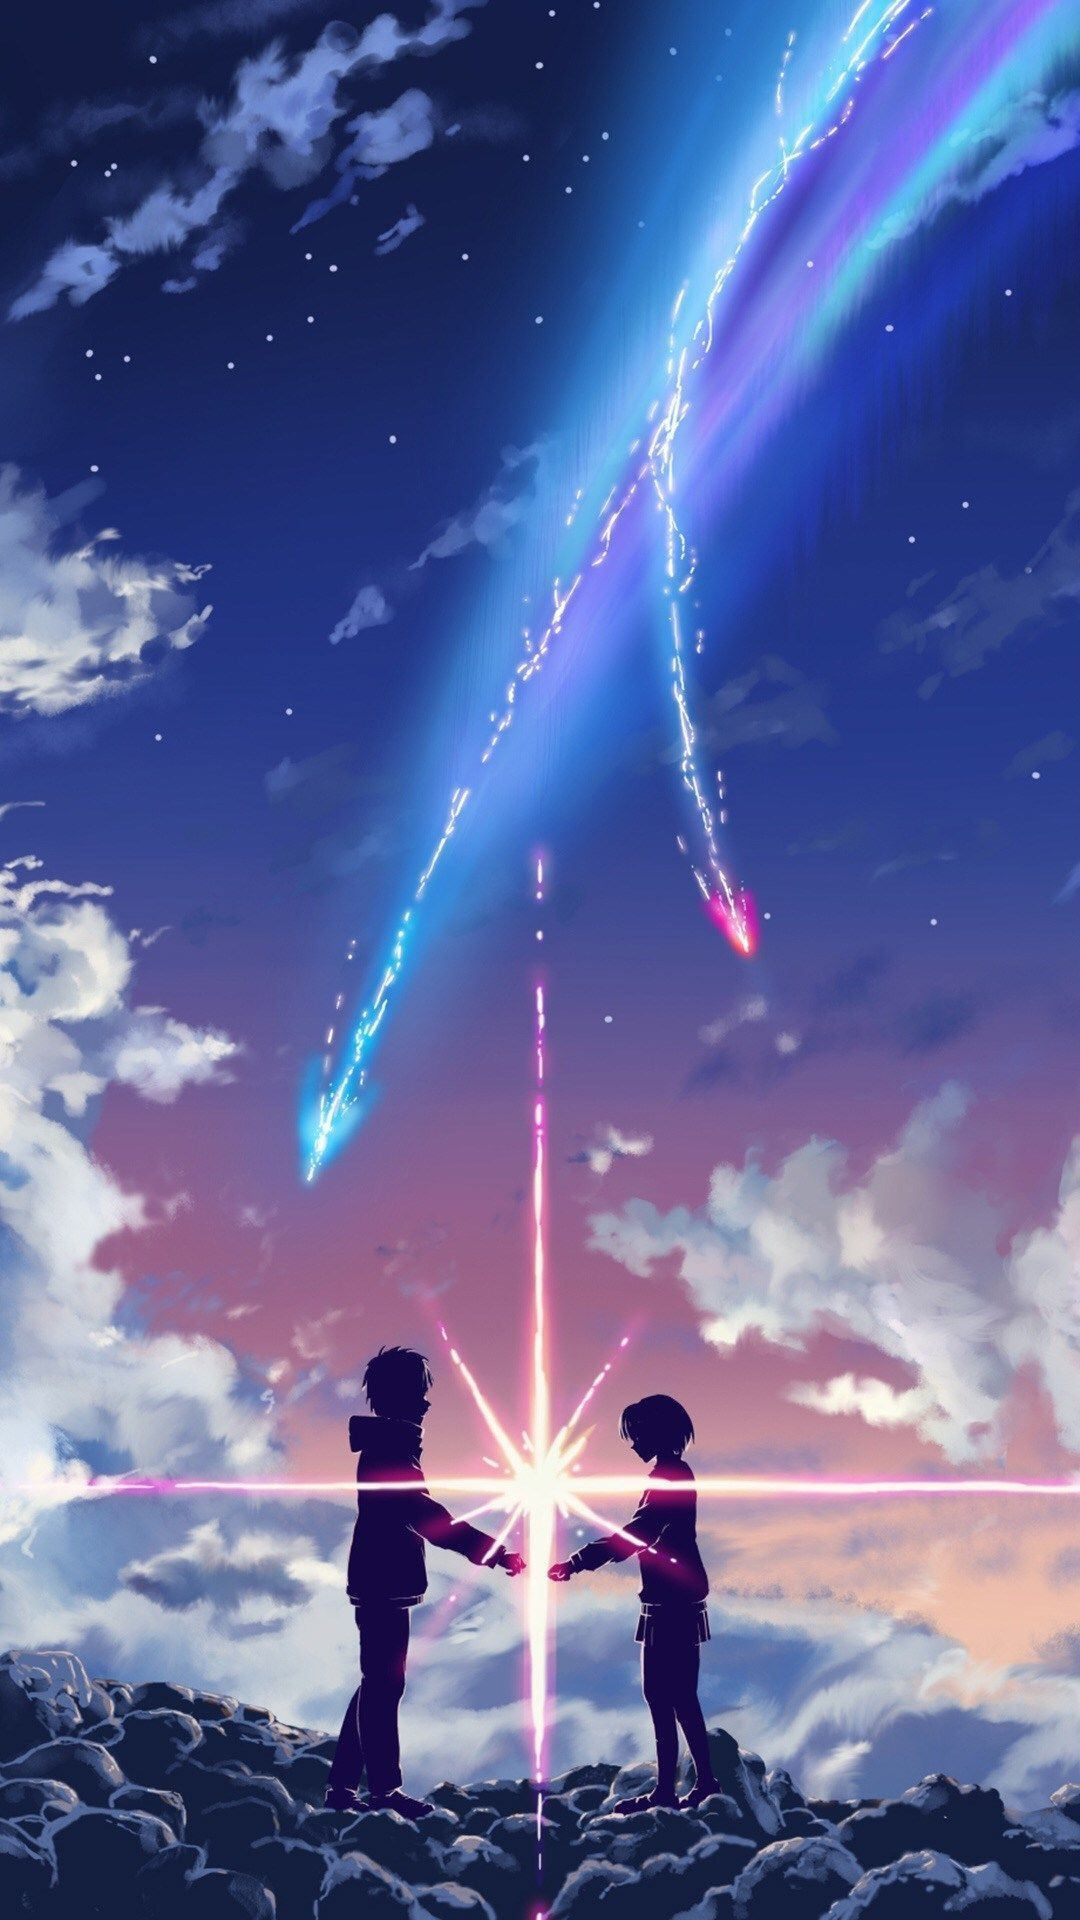 1080x1920 anime aesthetic iphone wallpaper Fresh Your Name Movie Touching ...